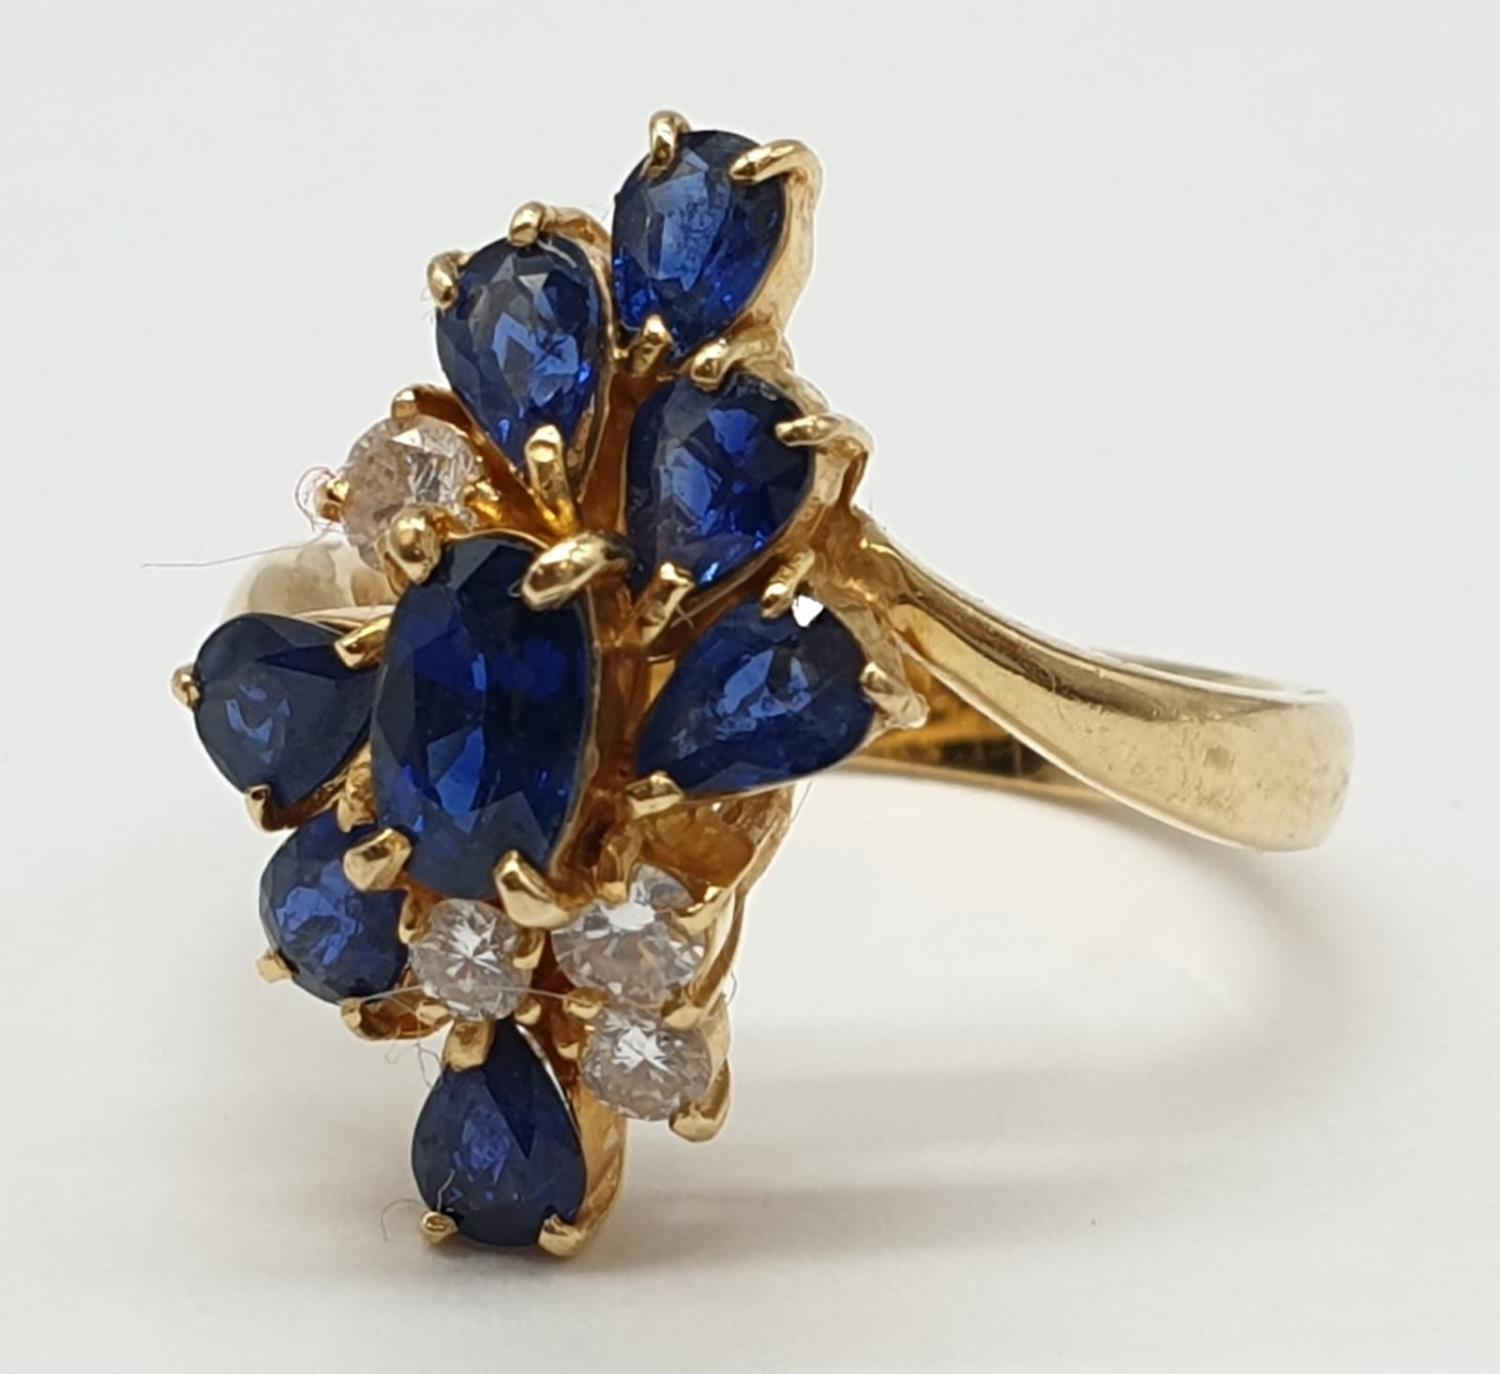 18ct Yellow Gold Cross Over Diamond and Sapphire Ring, Ring Size K, Weight 5.8g - Image 2 of 6